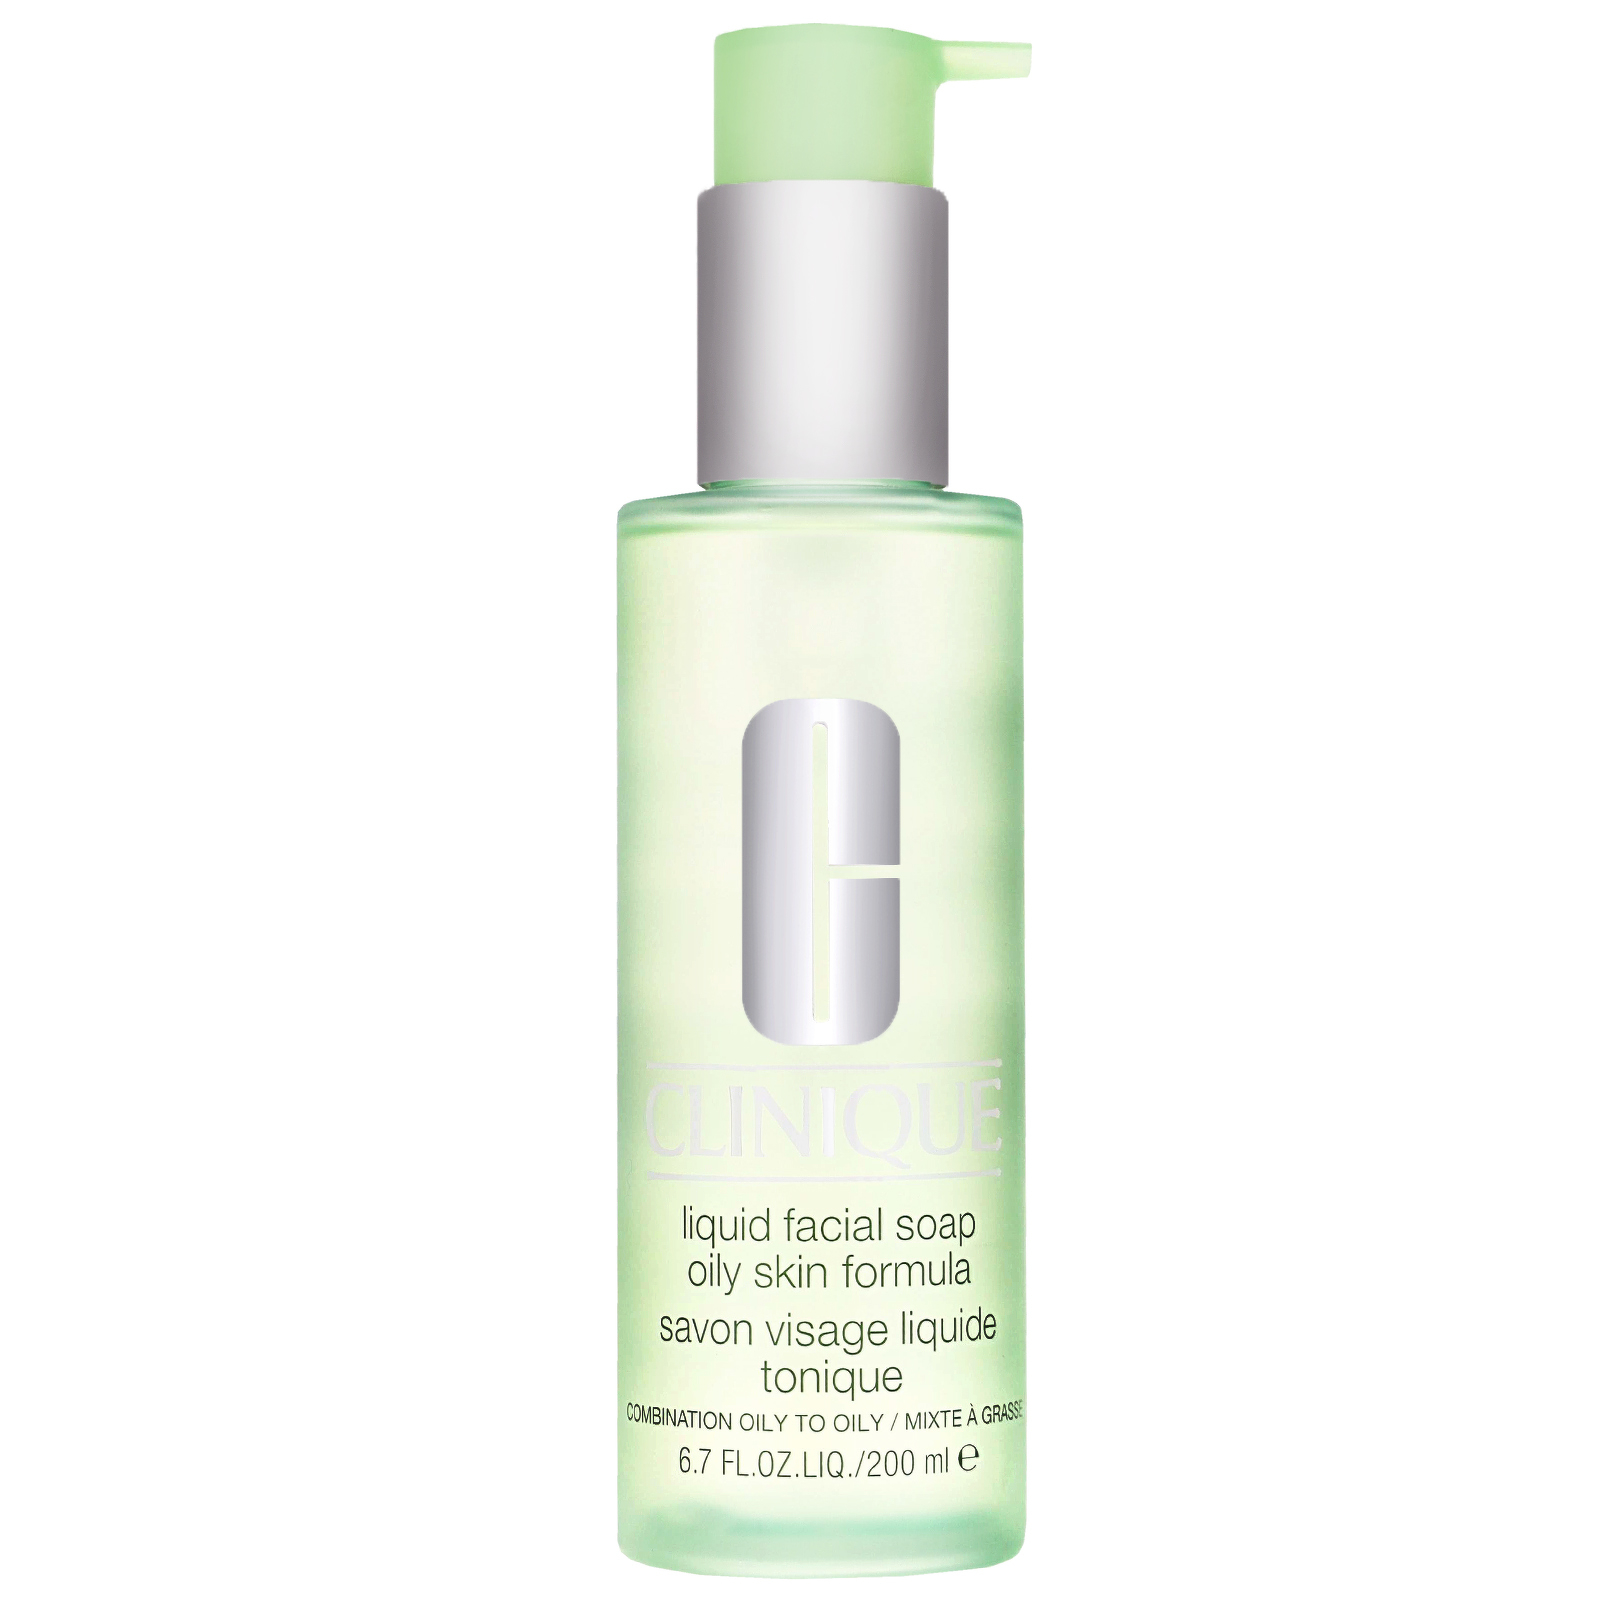 Clinique Cleansers & Makeup Removers Liquid Facial Soap Oily Skin Formula for Oily / Combination Skin 200ml / 6.7 fl.oz.